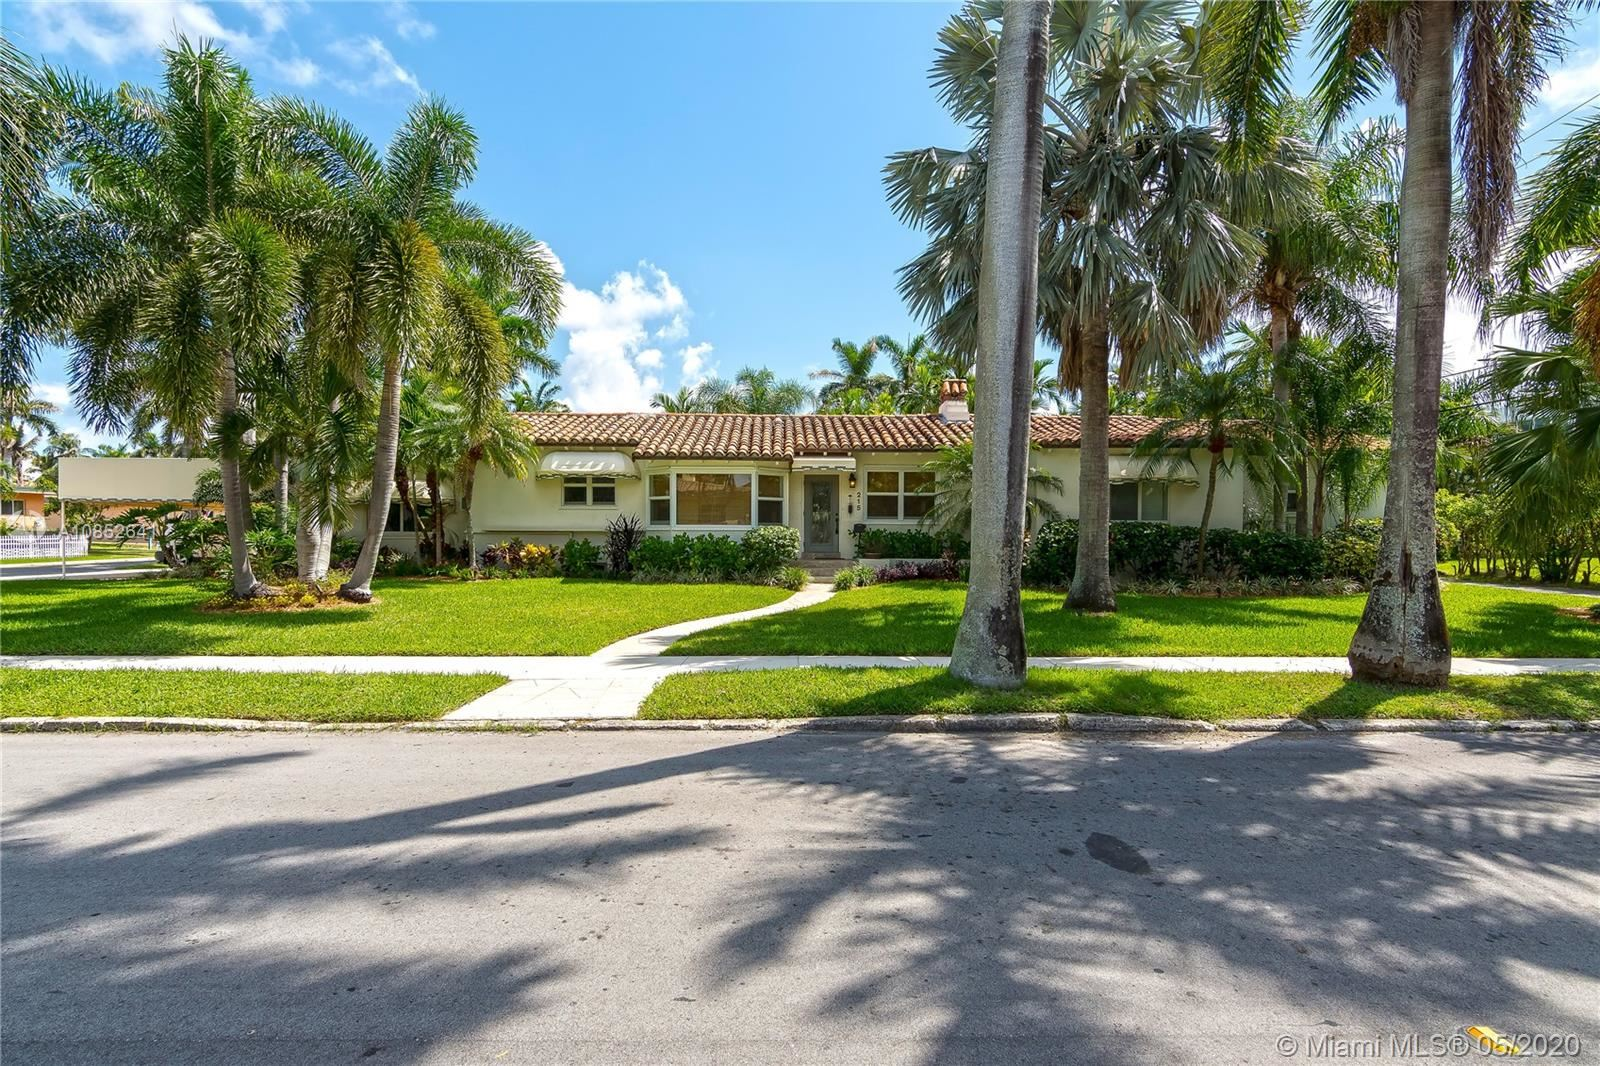 Photo for 215 N 10th Ave, Hollywood, FL 33019 (MLS # A10852641)